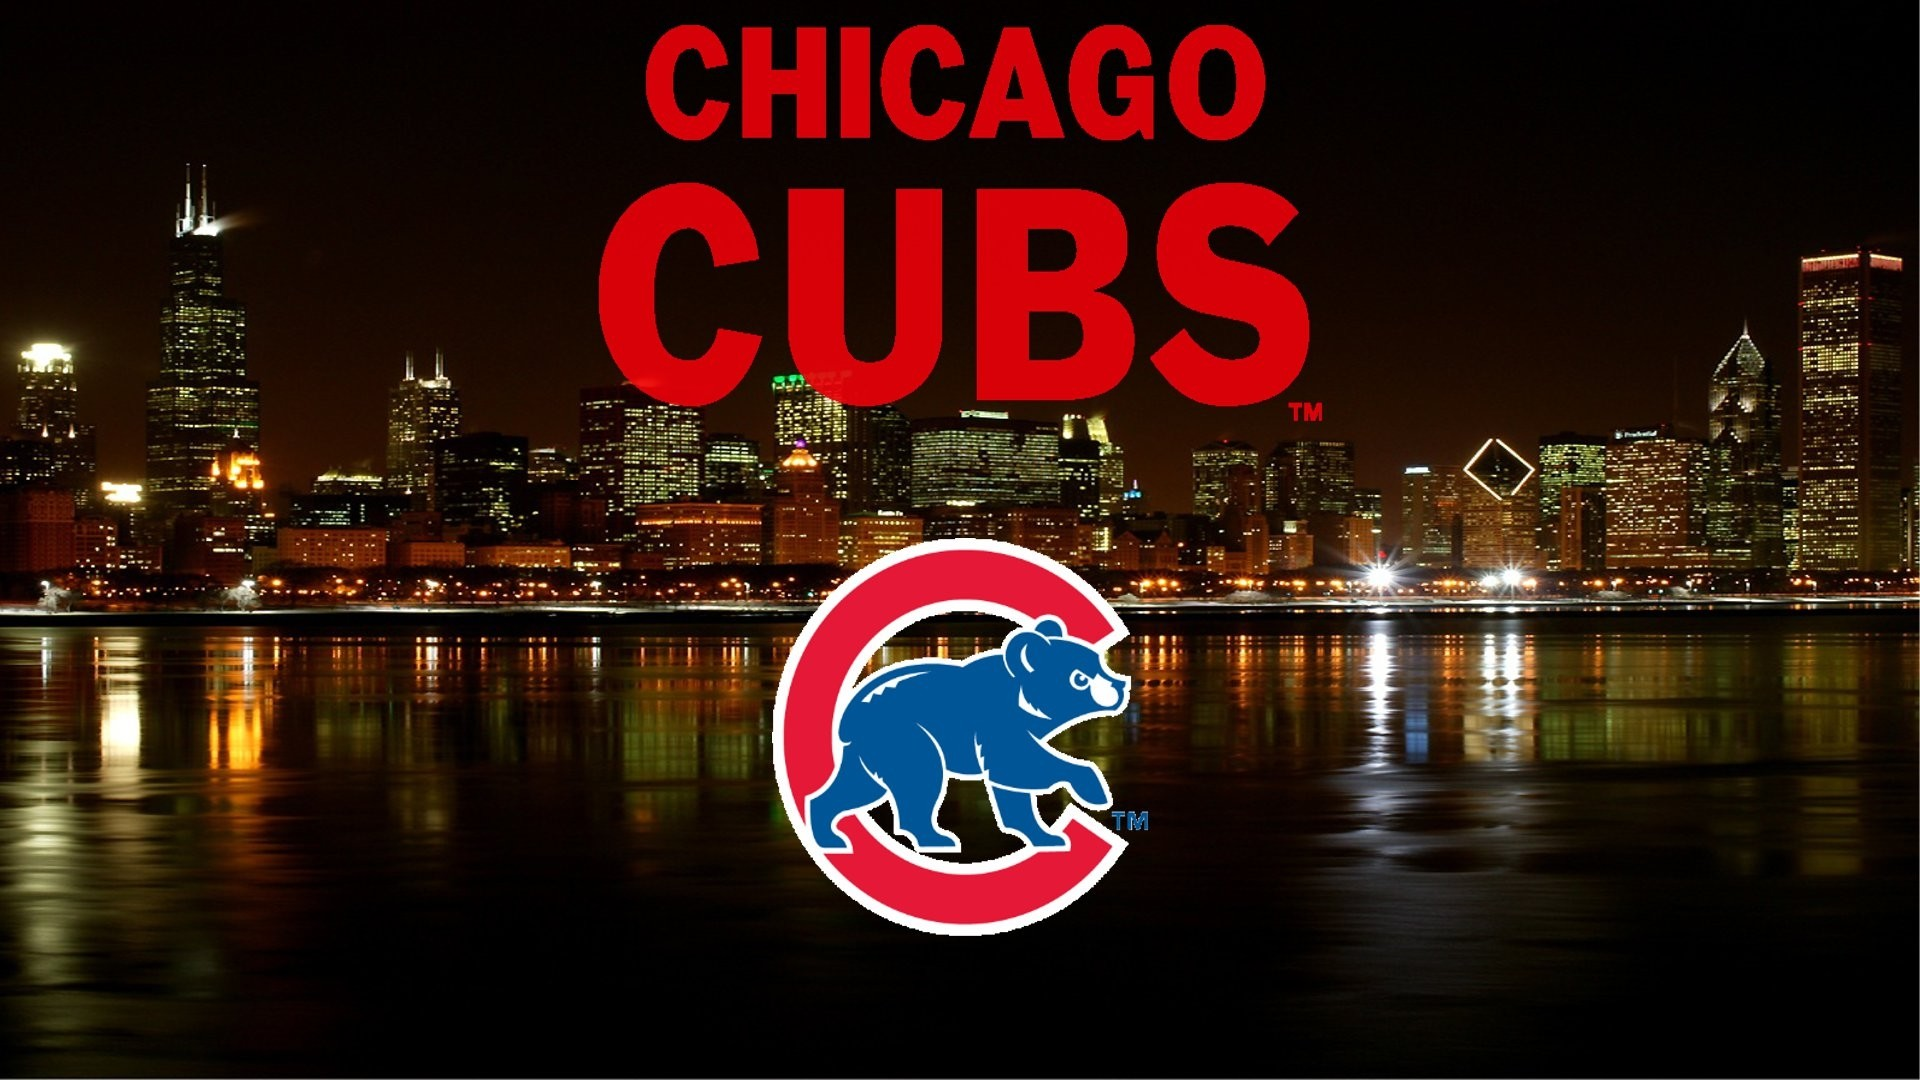 … chicago cubs wallpaper for android wallpapersafari …